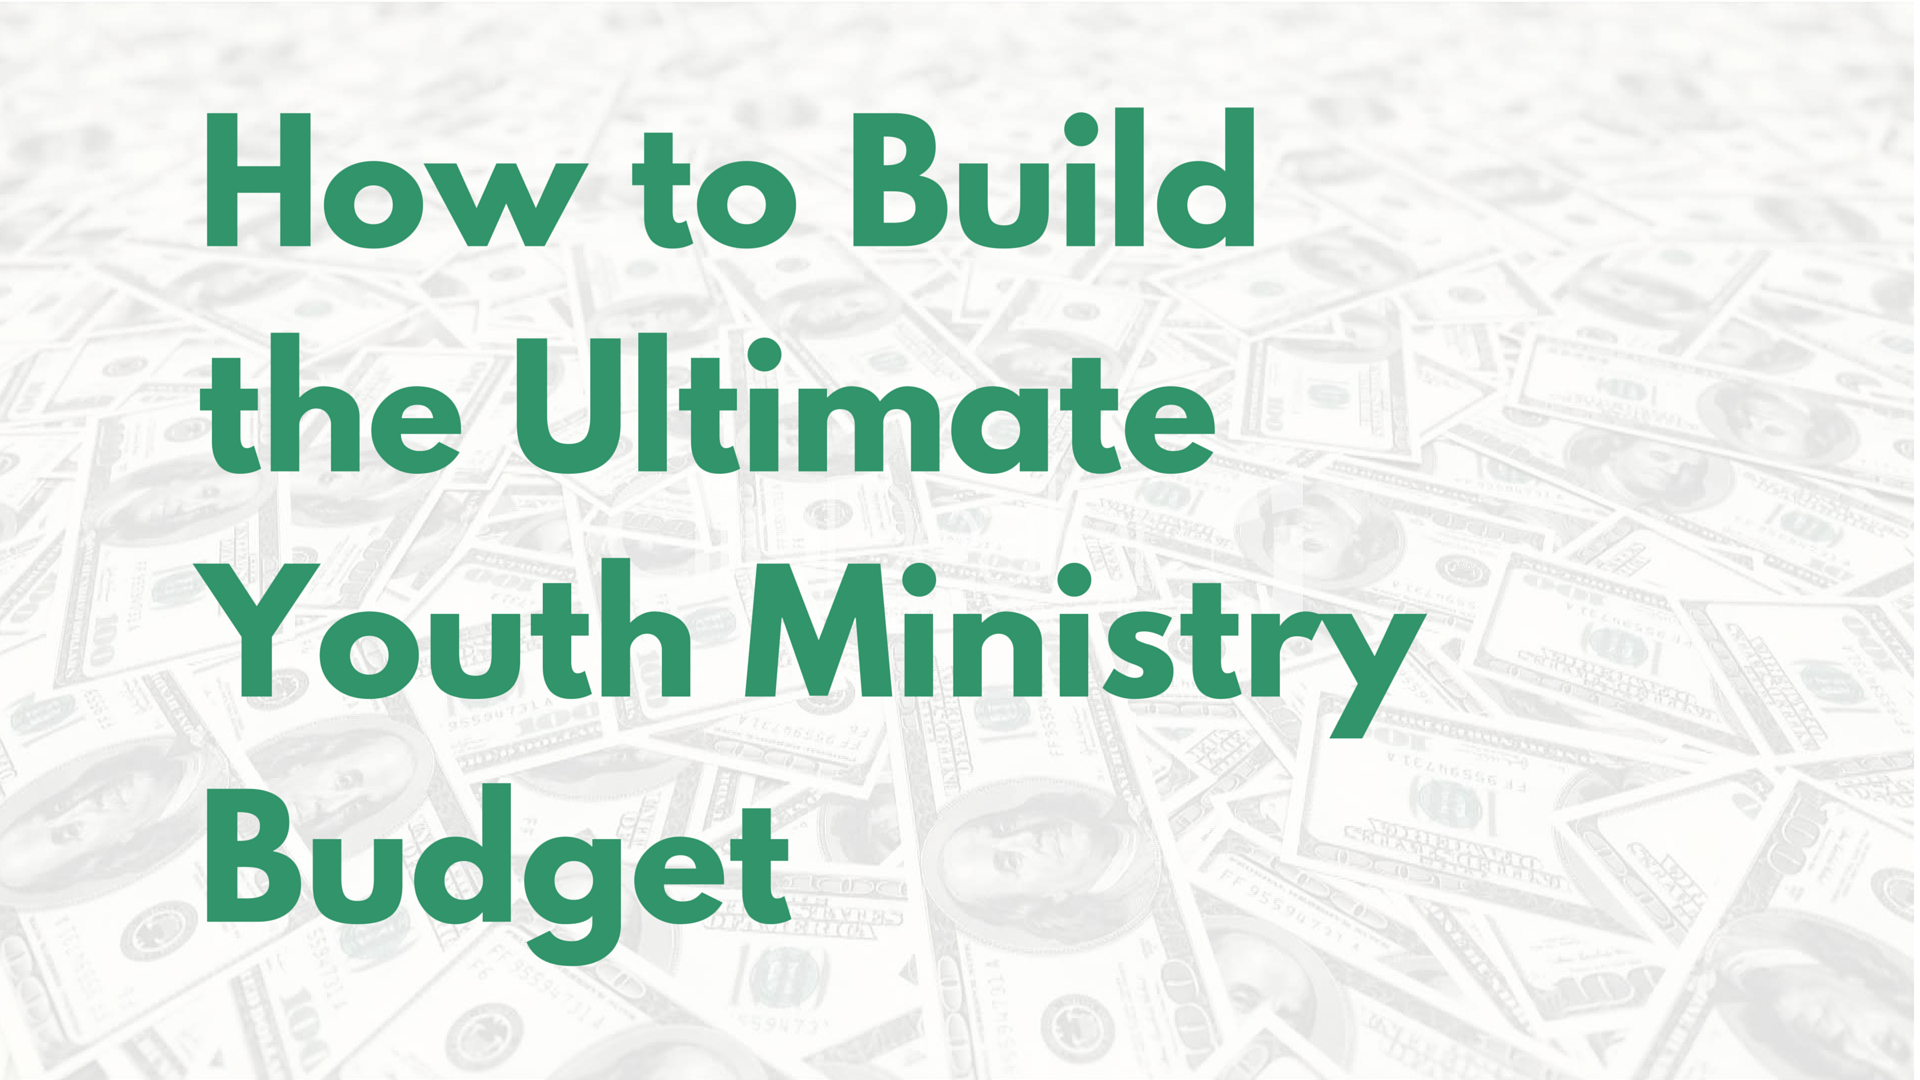 How to build the ultimate youth ministry budget youth ministry budget colourmoves